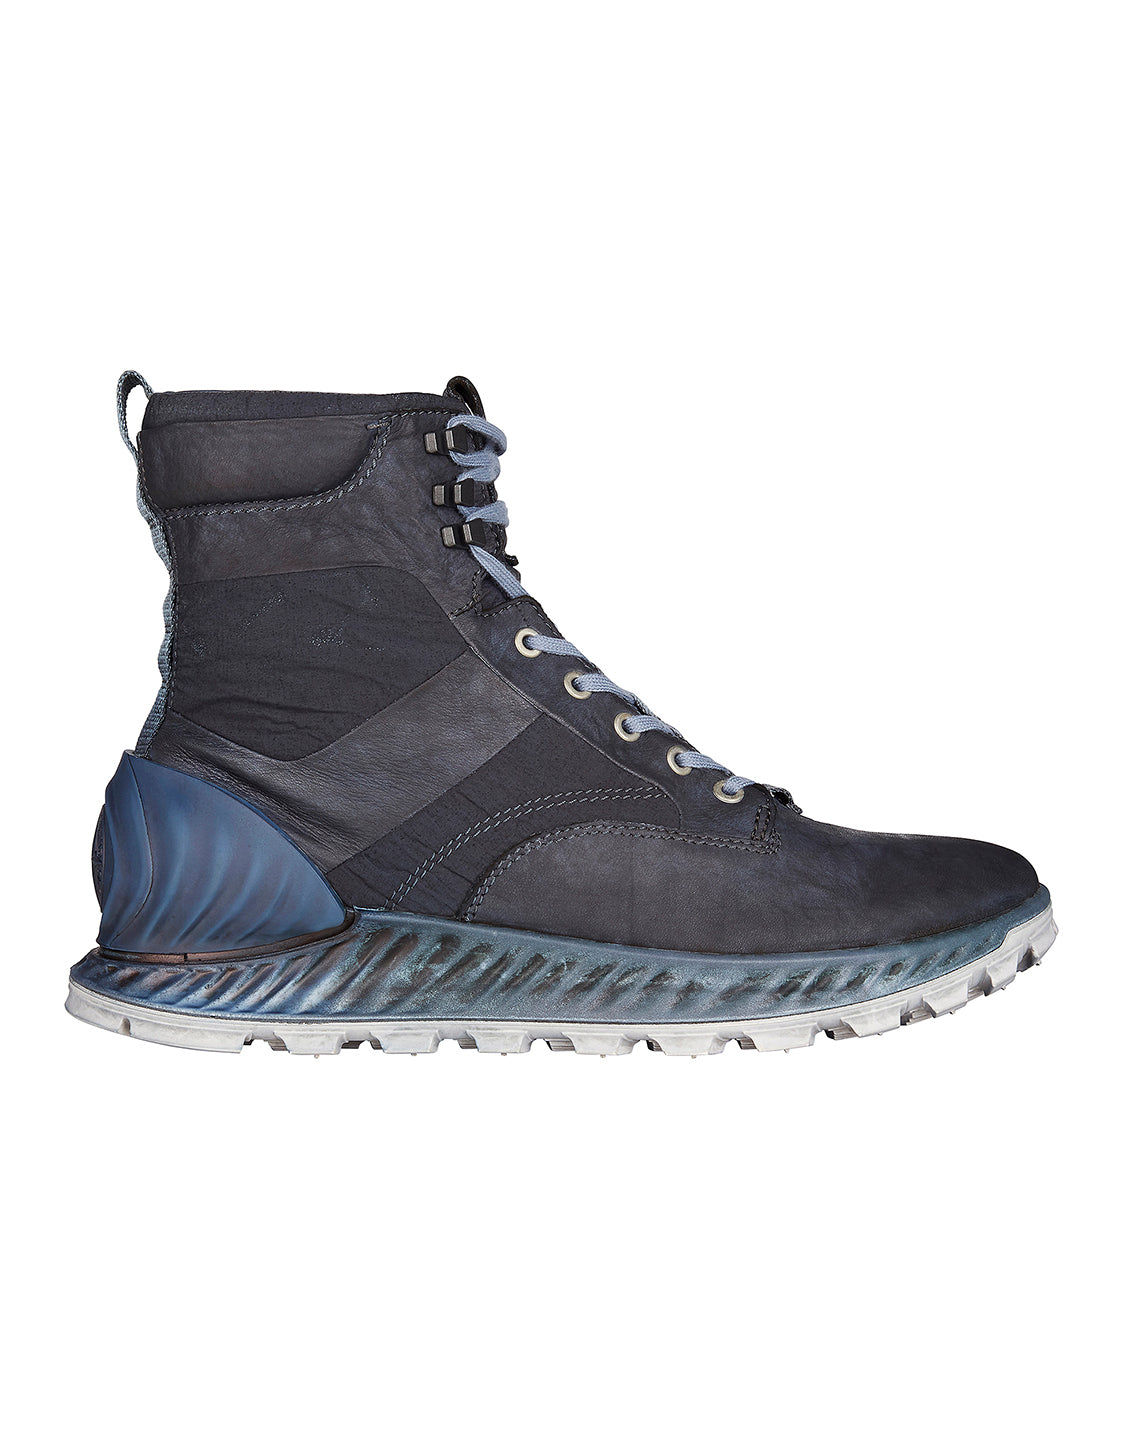 S0695 Garment Dyed Leather Exostrike Boot in Dark Blue